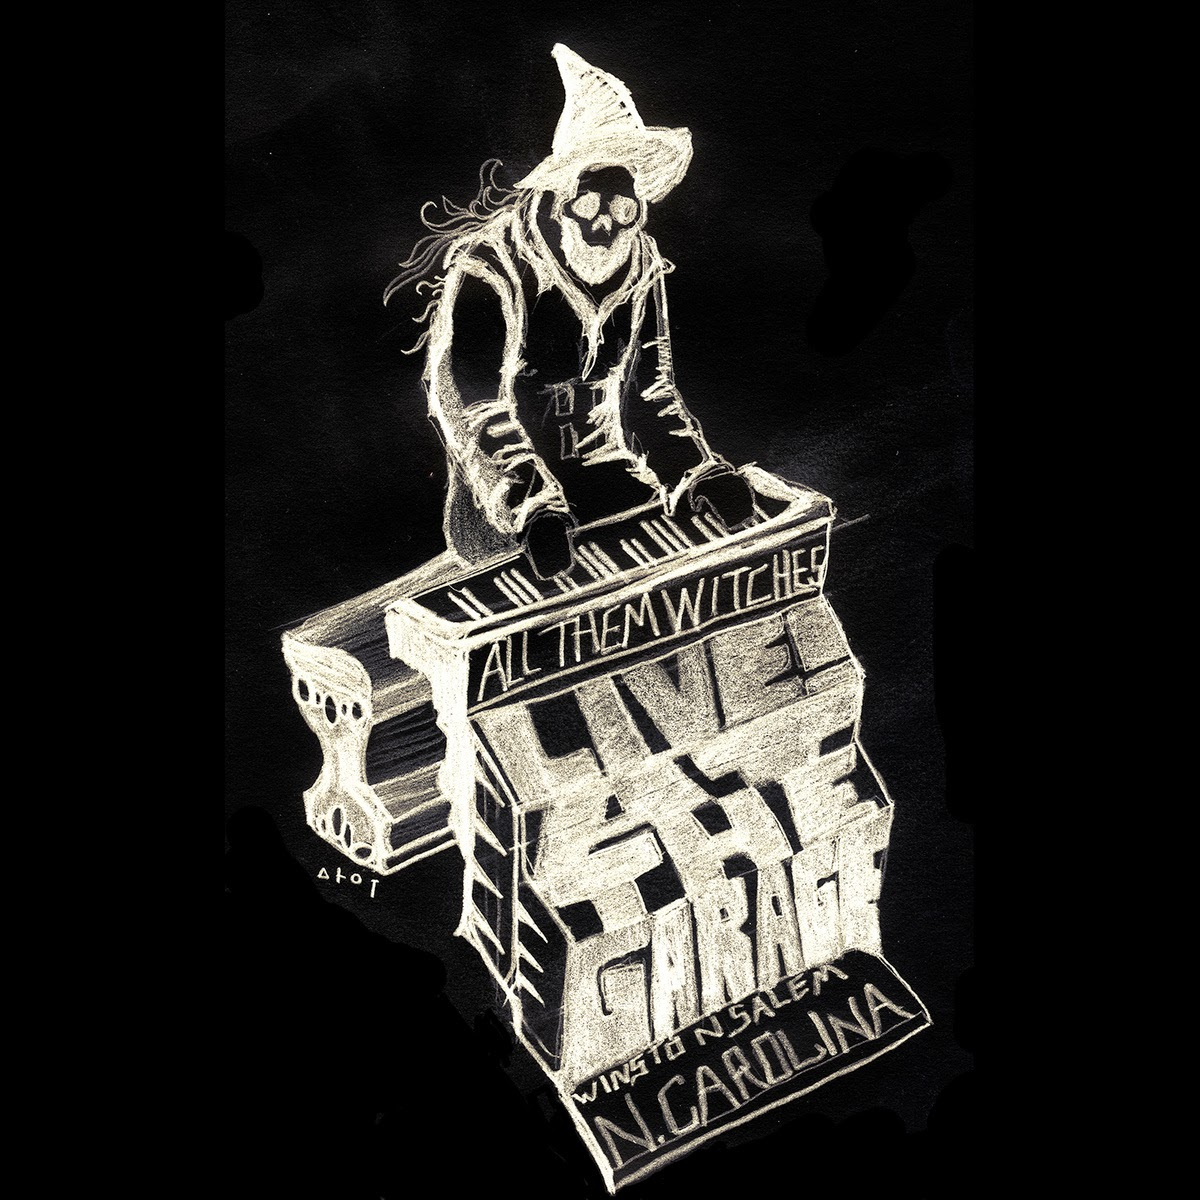 All Them Witches - At the Garage